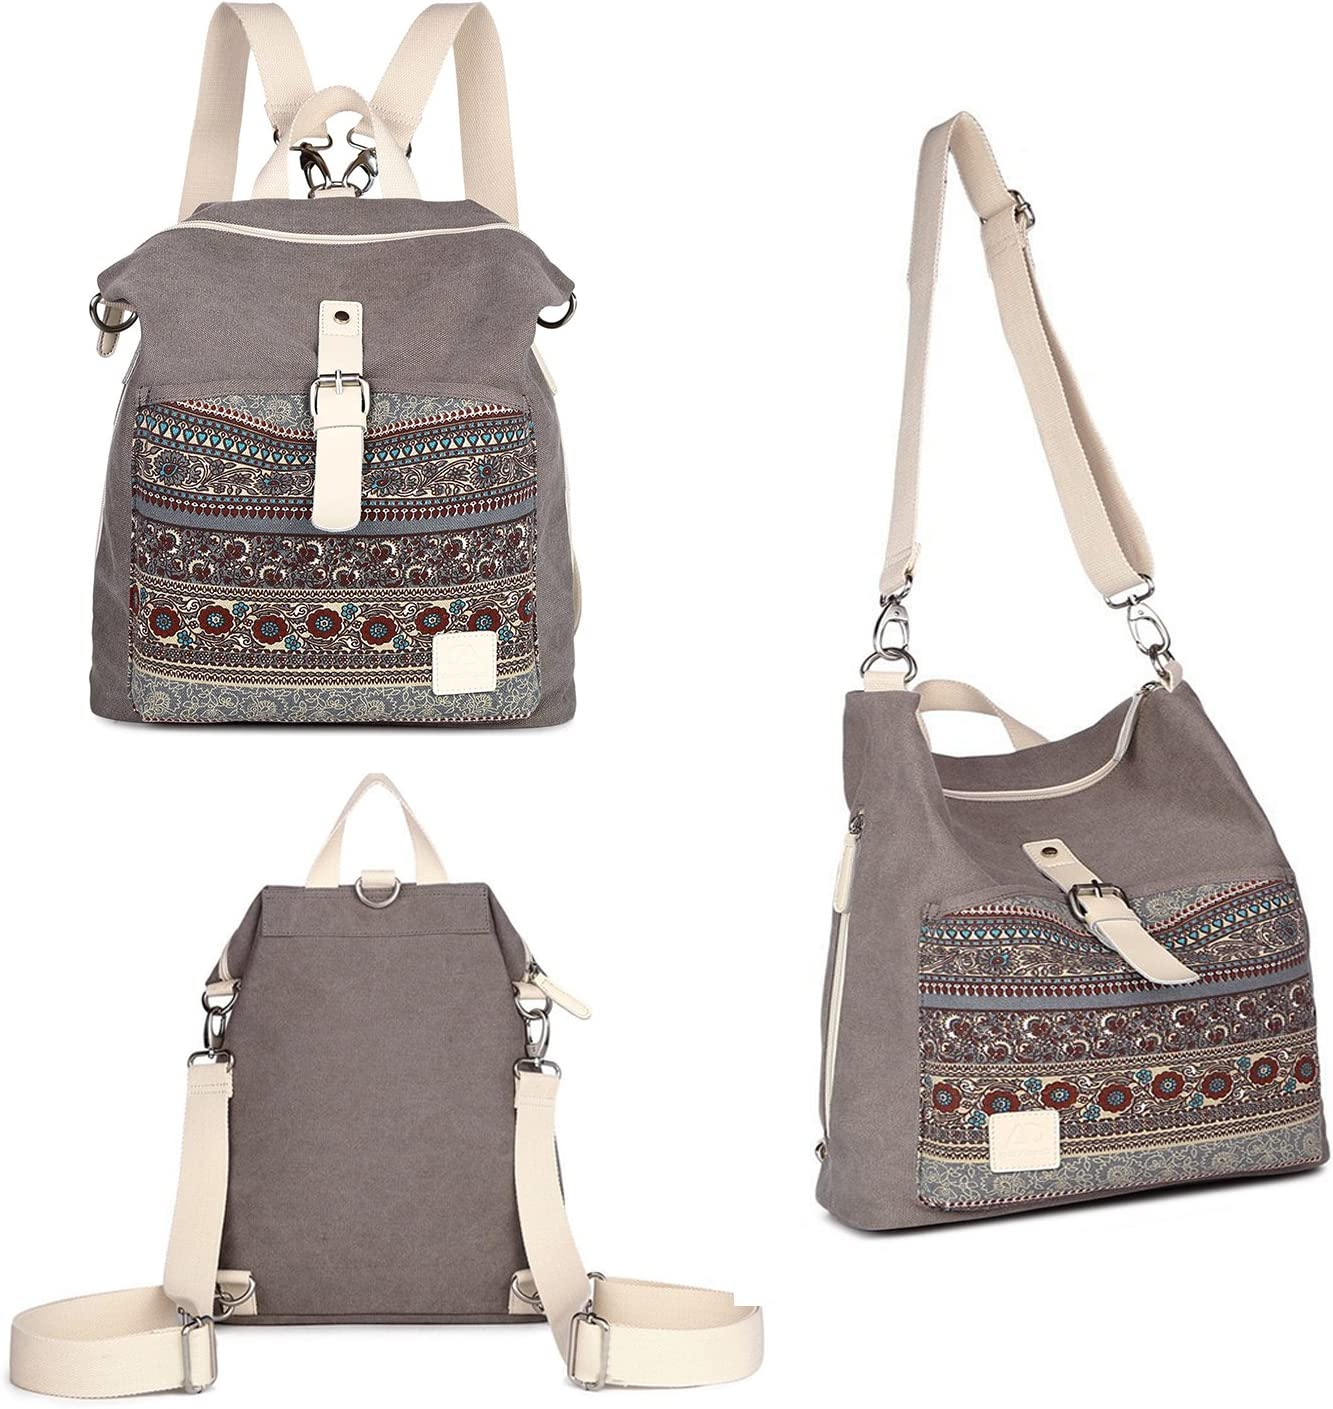 Womens Backpack Purse Canvas 3-Way Convertible Crossbody Bag